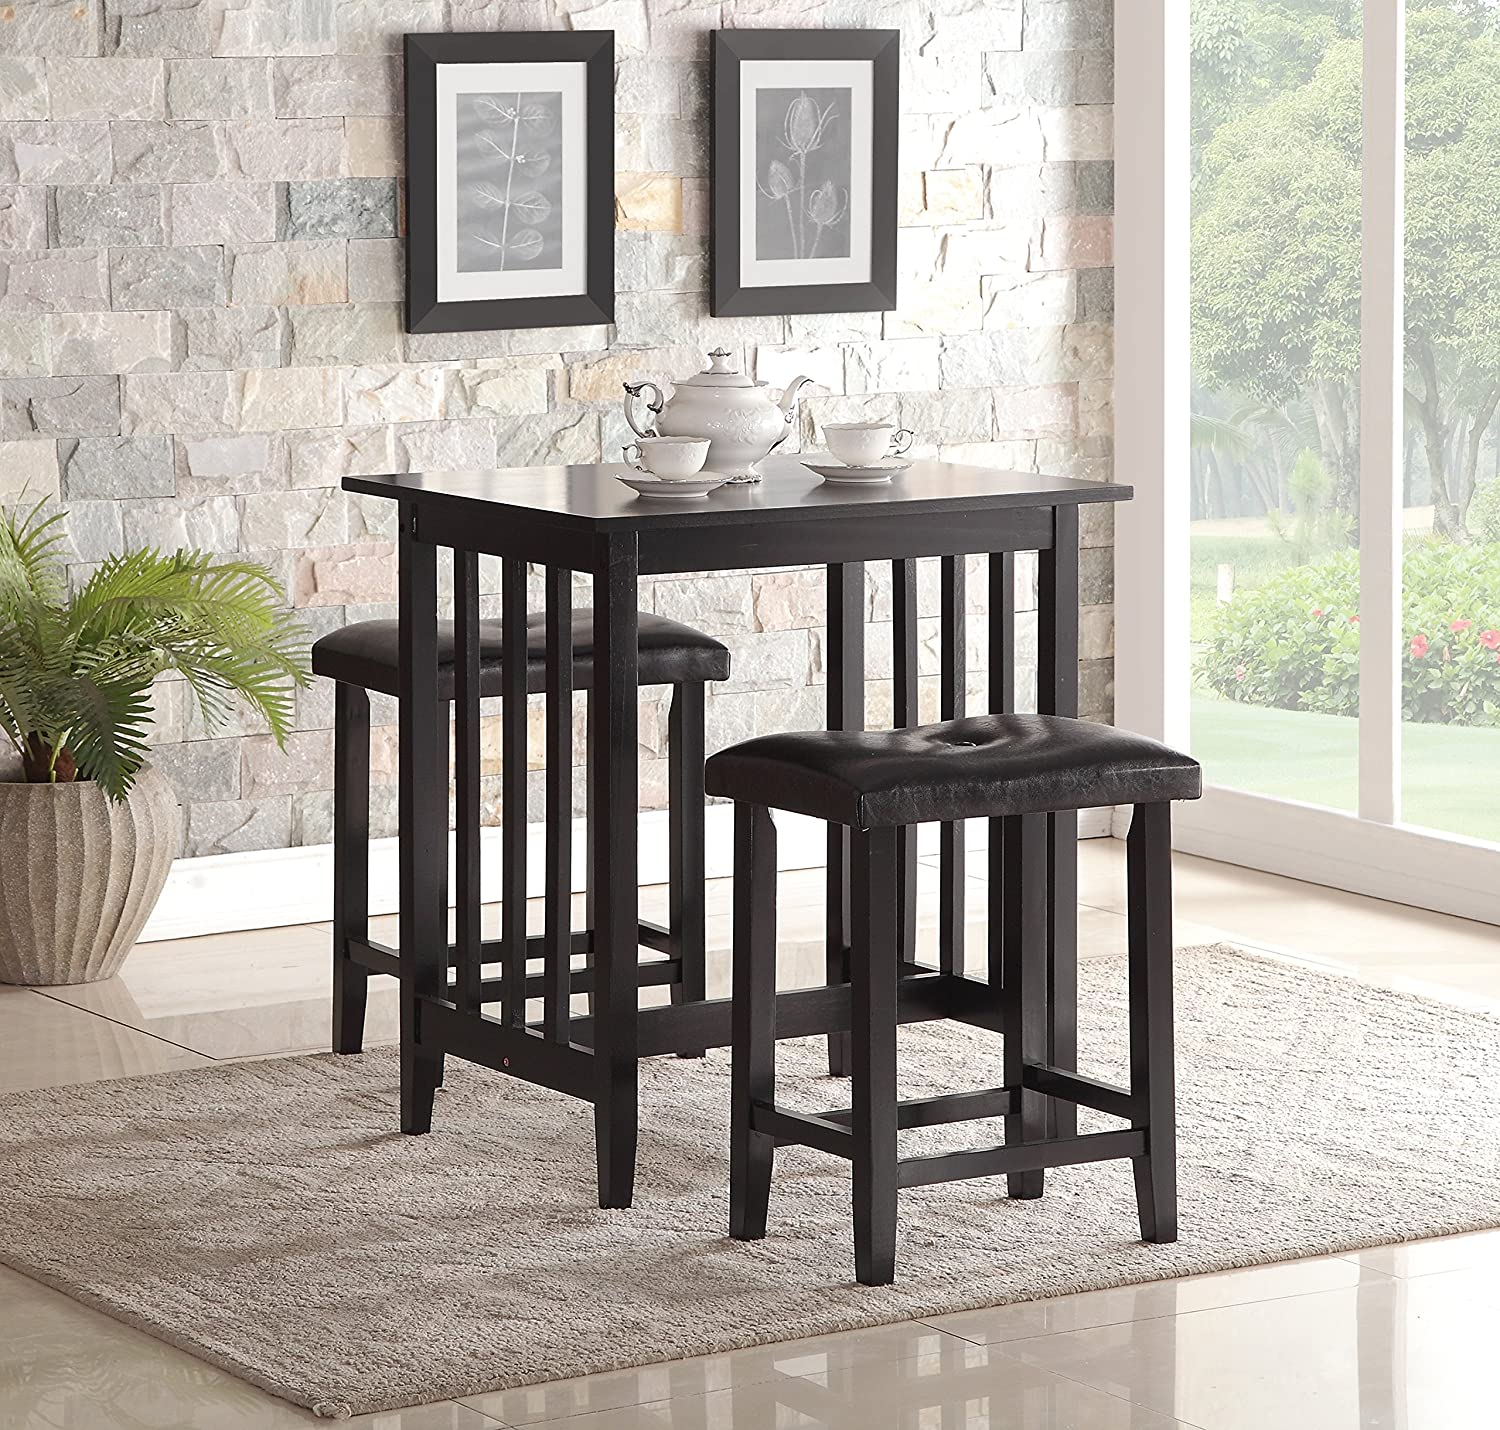 Attractive Amazon.com   Roundhill Furniture 3 Piece Counter Height Dining Set With  Saddleback Stools, Black   Table U0026 Chair Sets